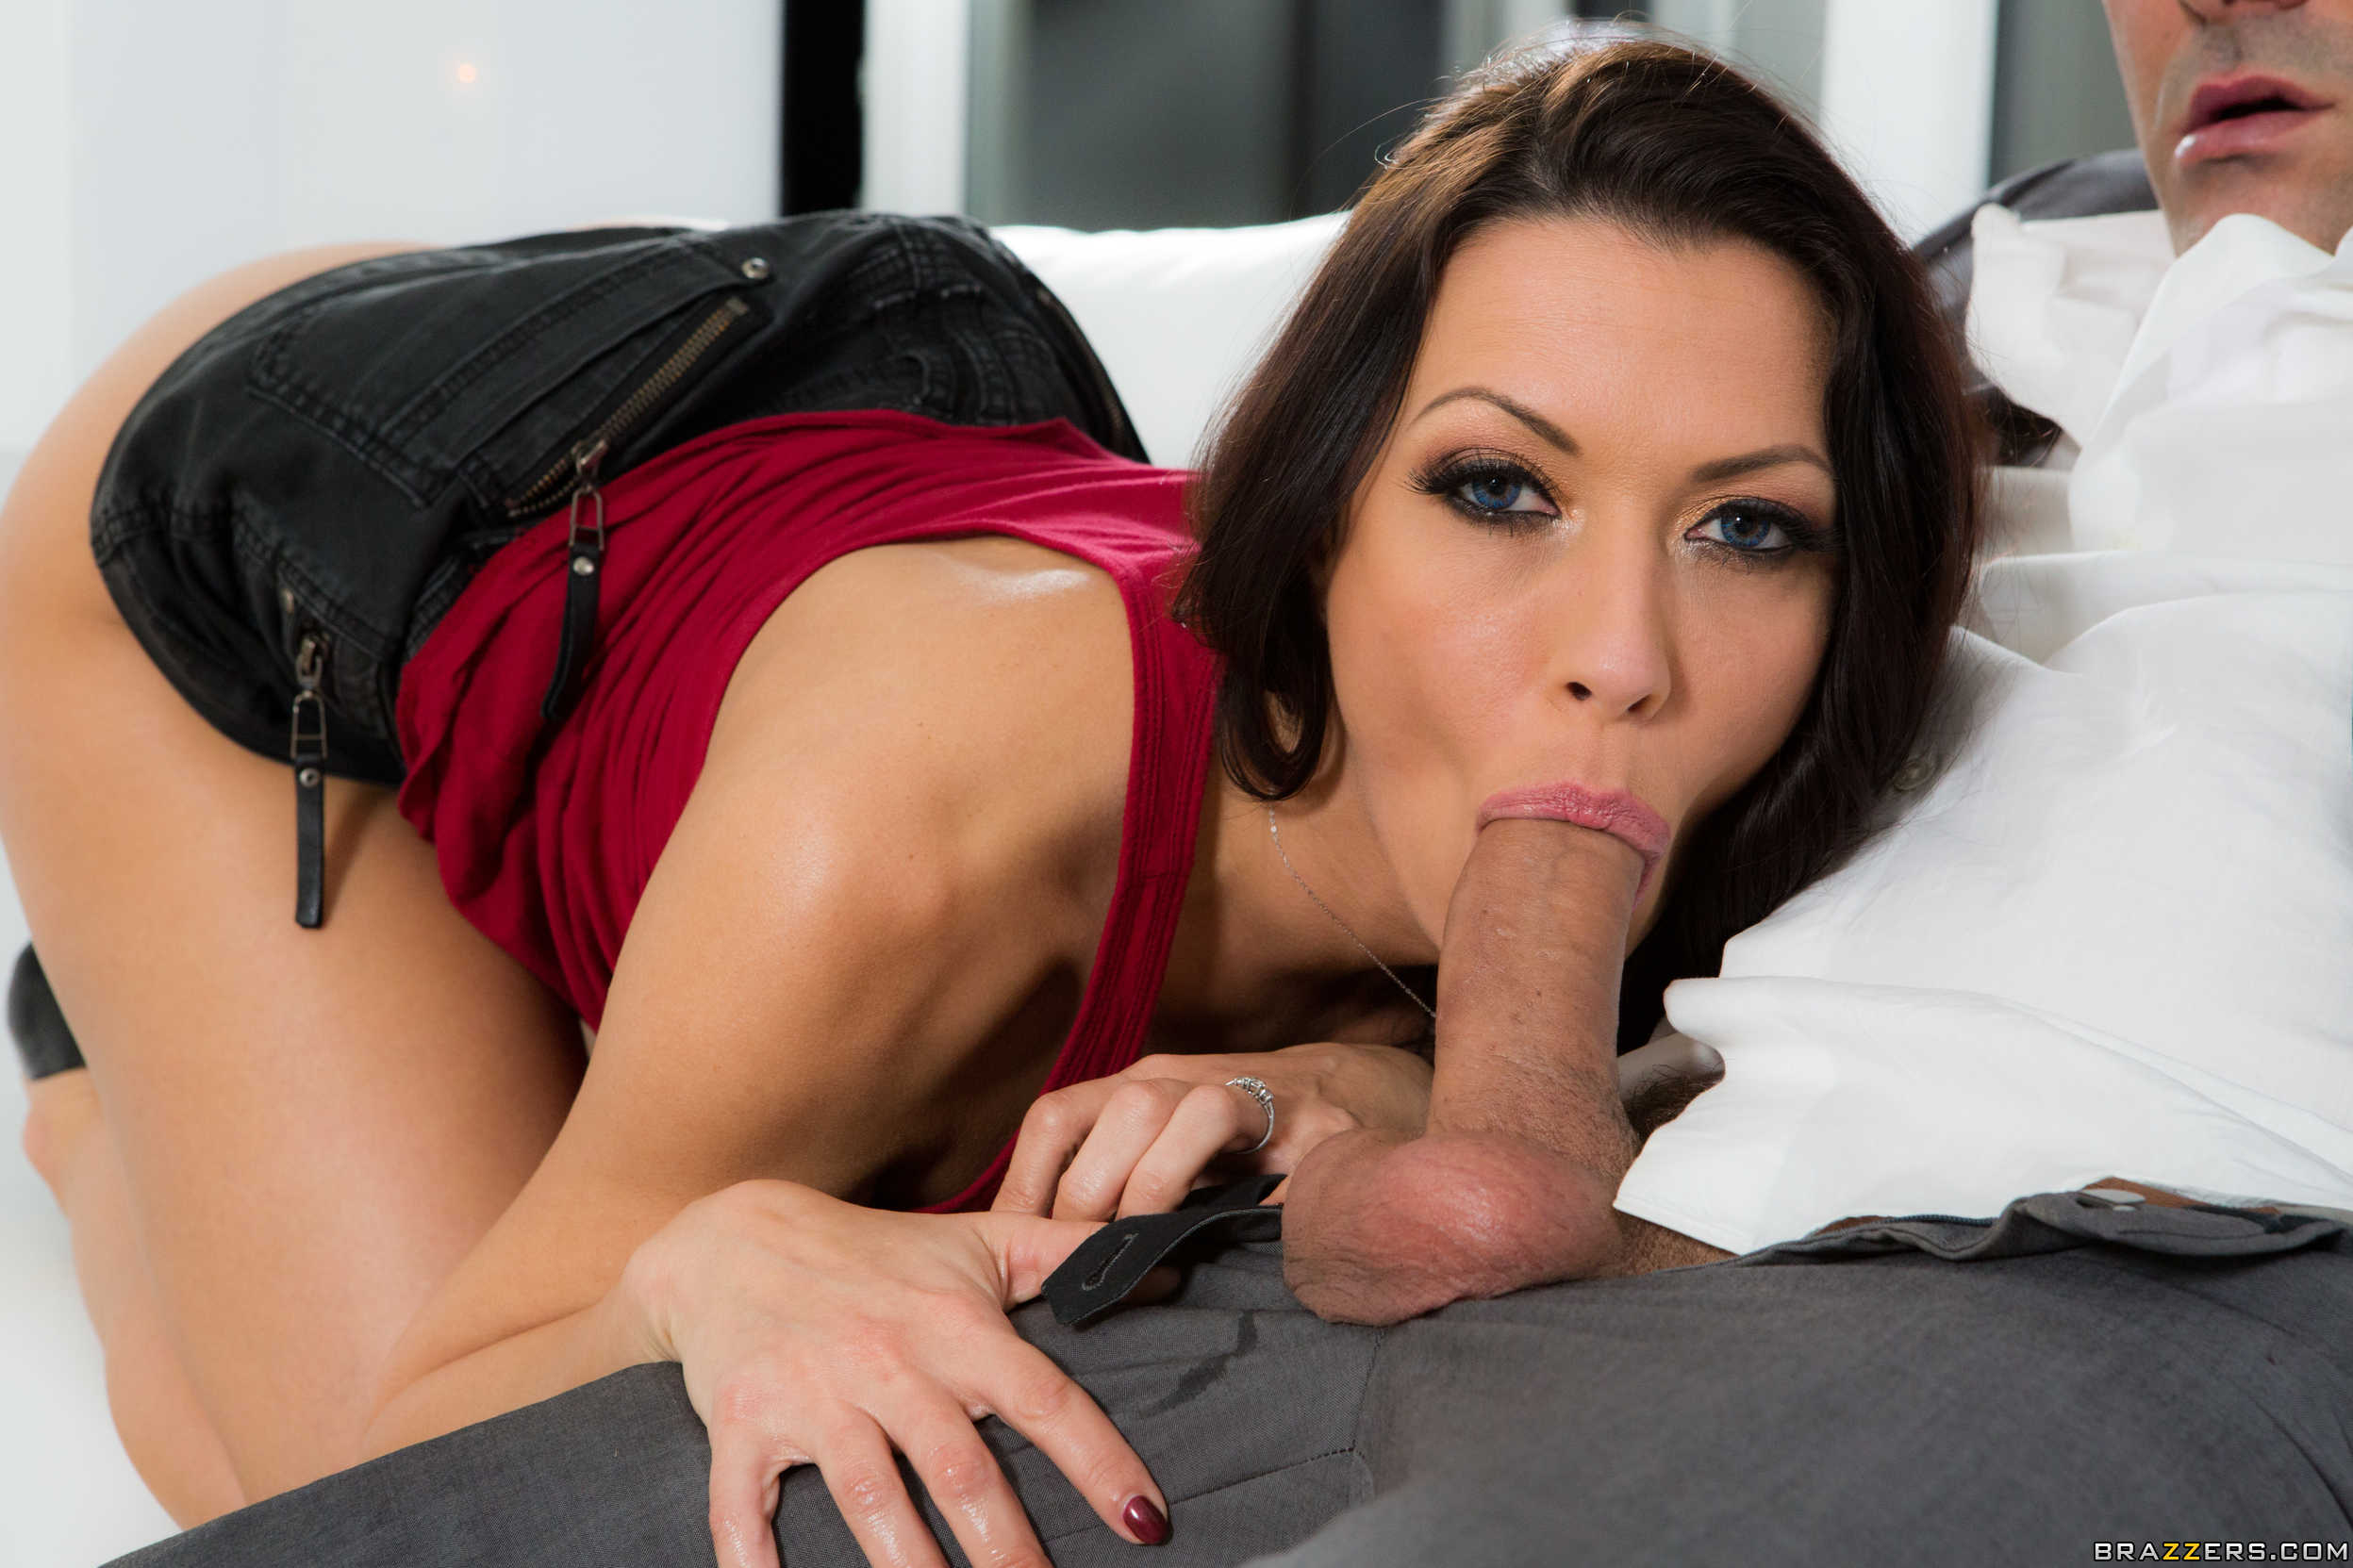 Rachel starr facial cumshot compilation vol 1 1